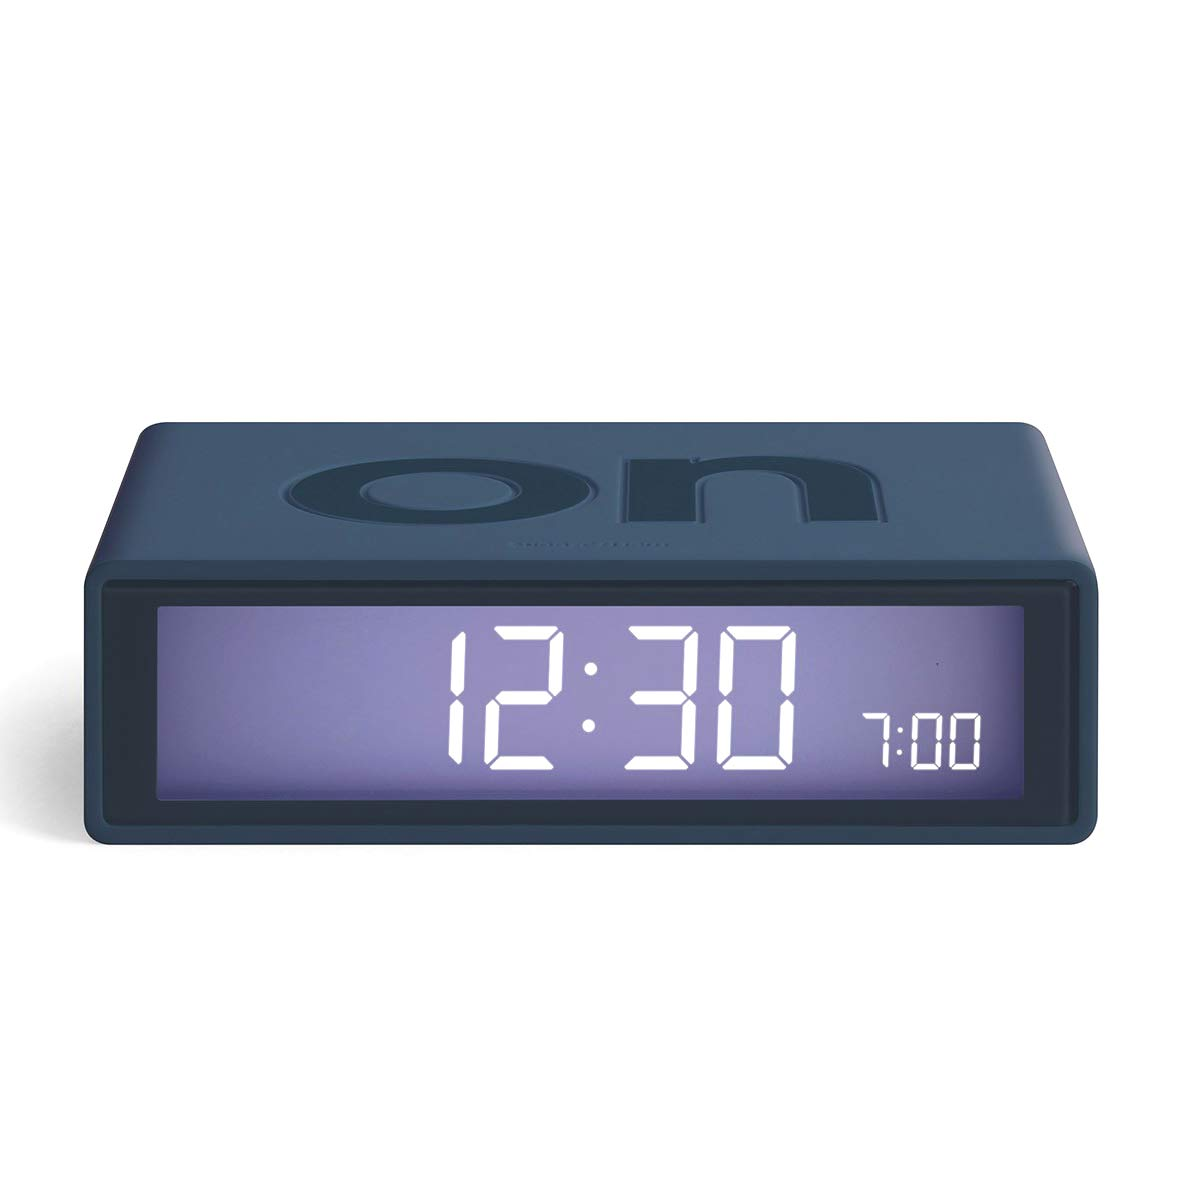 LEXON Flip+ LCD alarm clock LR150BF9 dark blue | the design gift shop